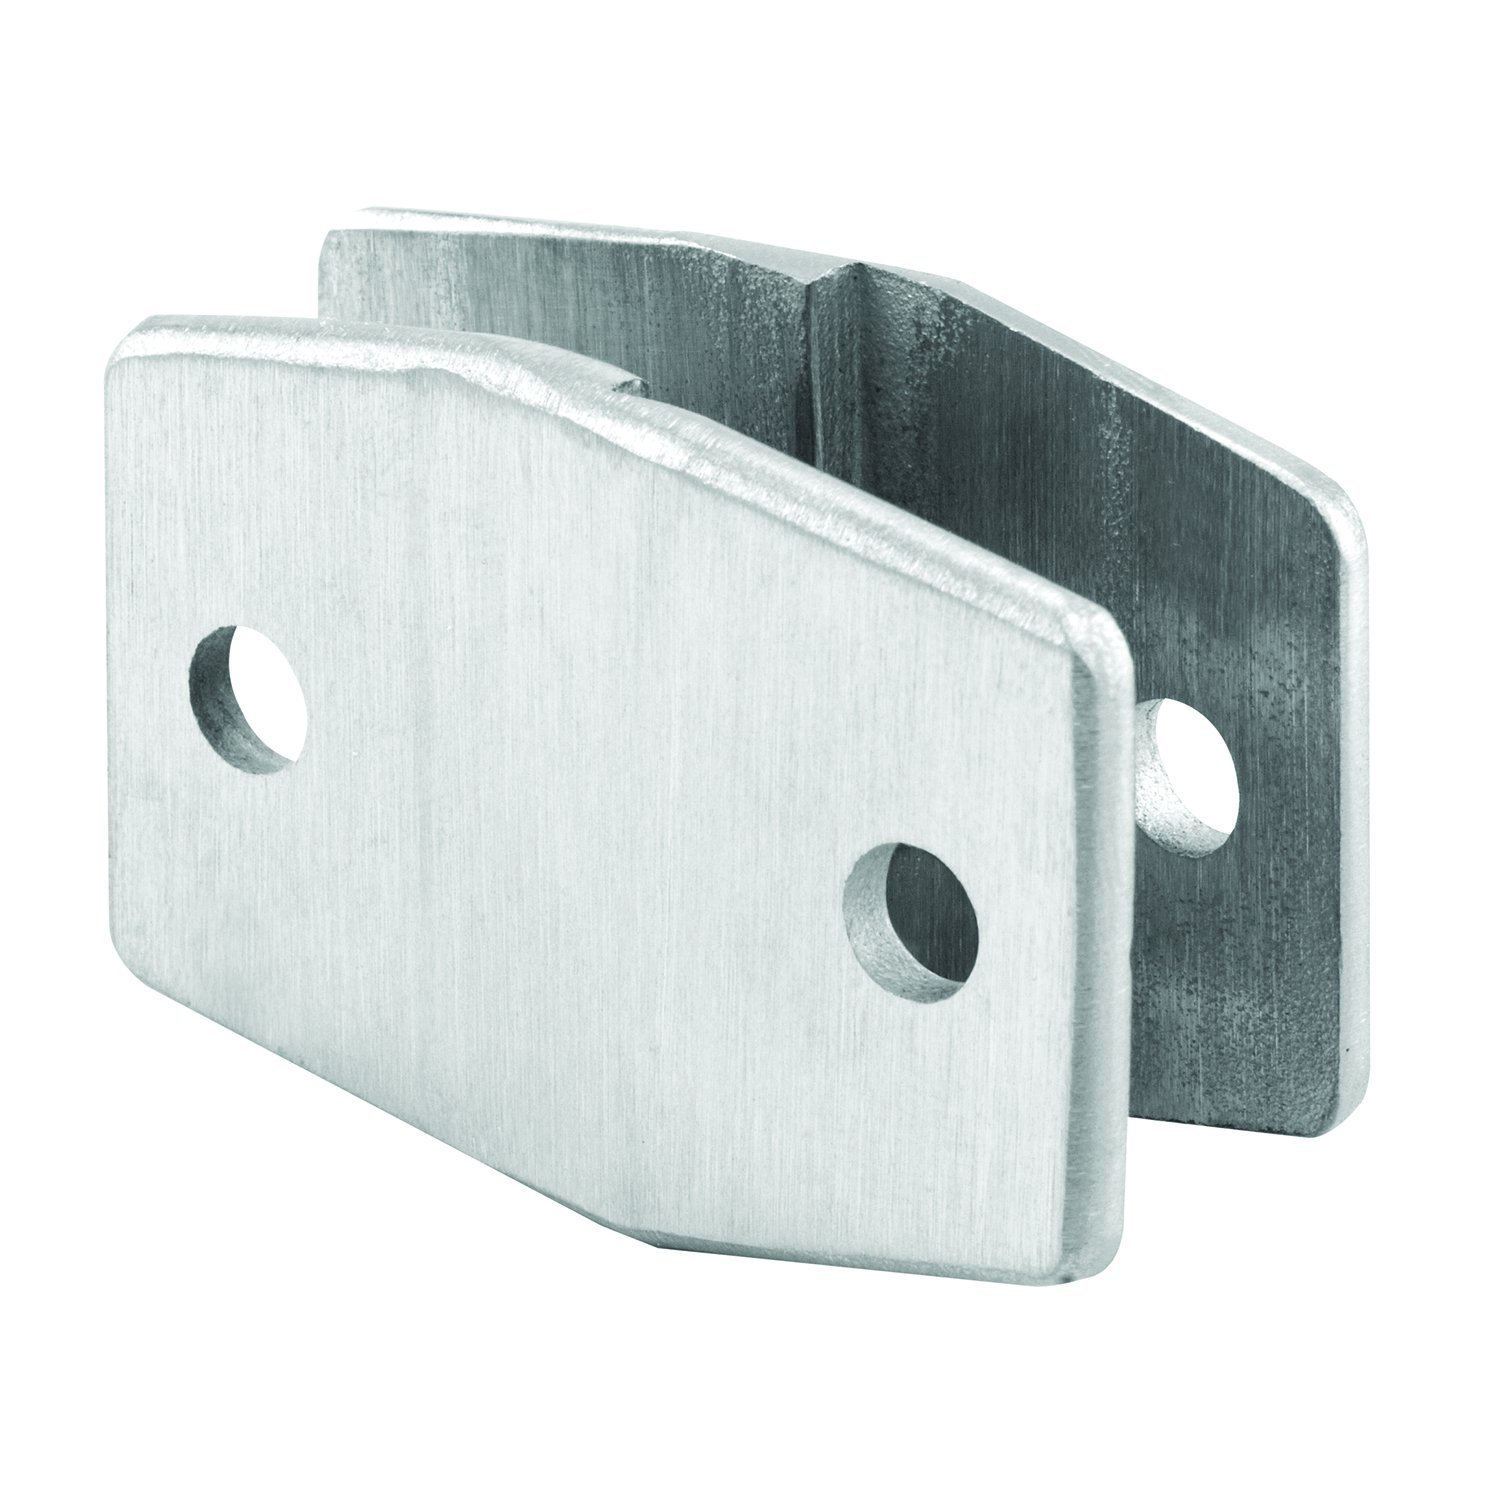 1//4In Offset Pack of 1 Set Sentry Supply 656-4028-T Alcove Clips Torx Satin Finish Cast Stainless Steel